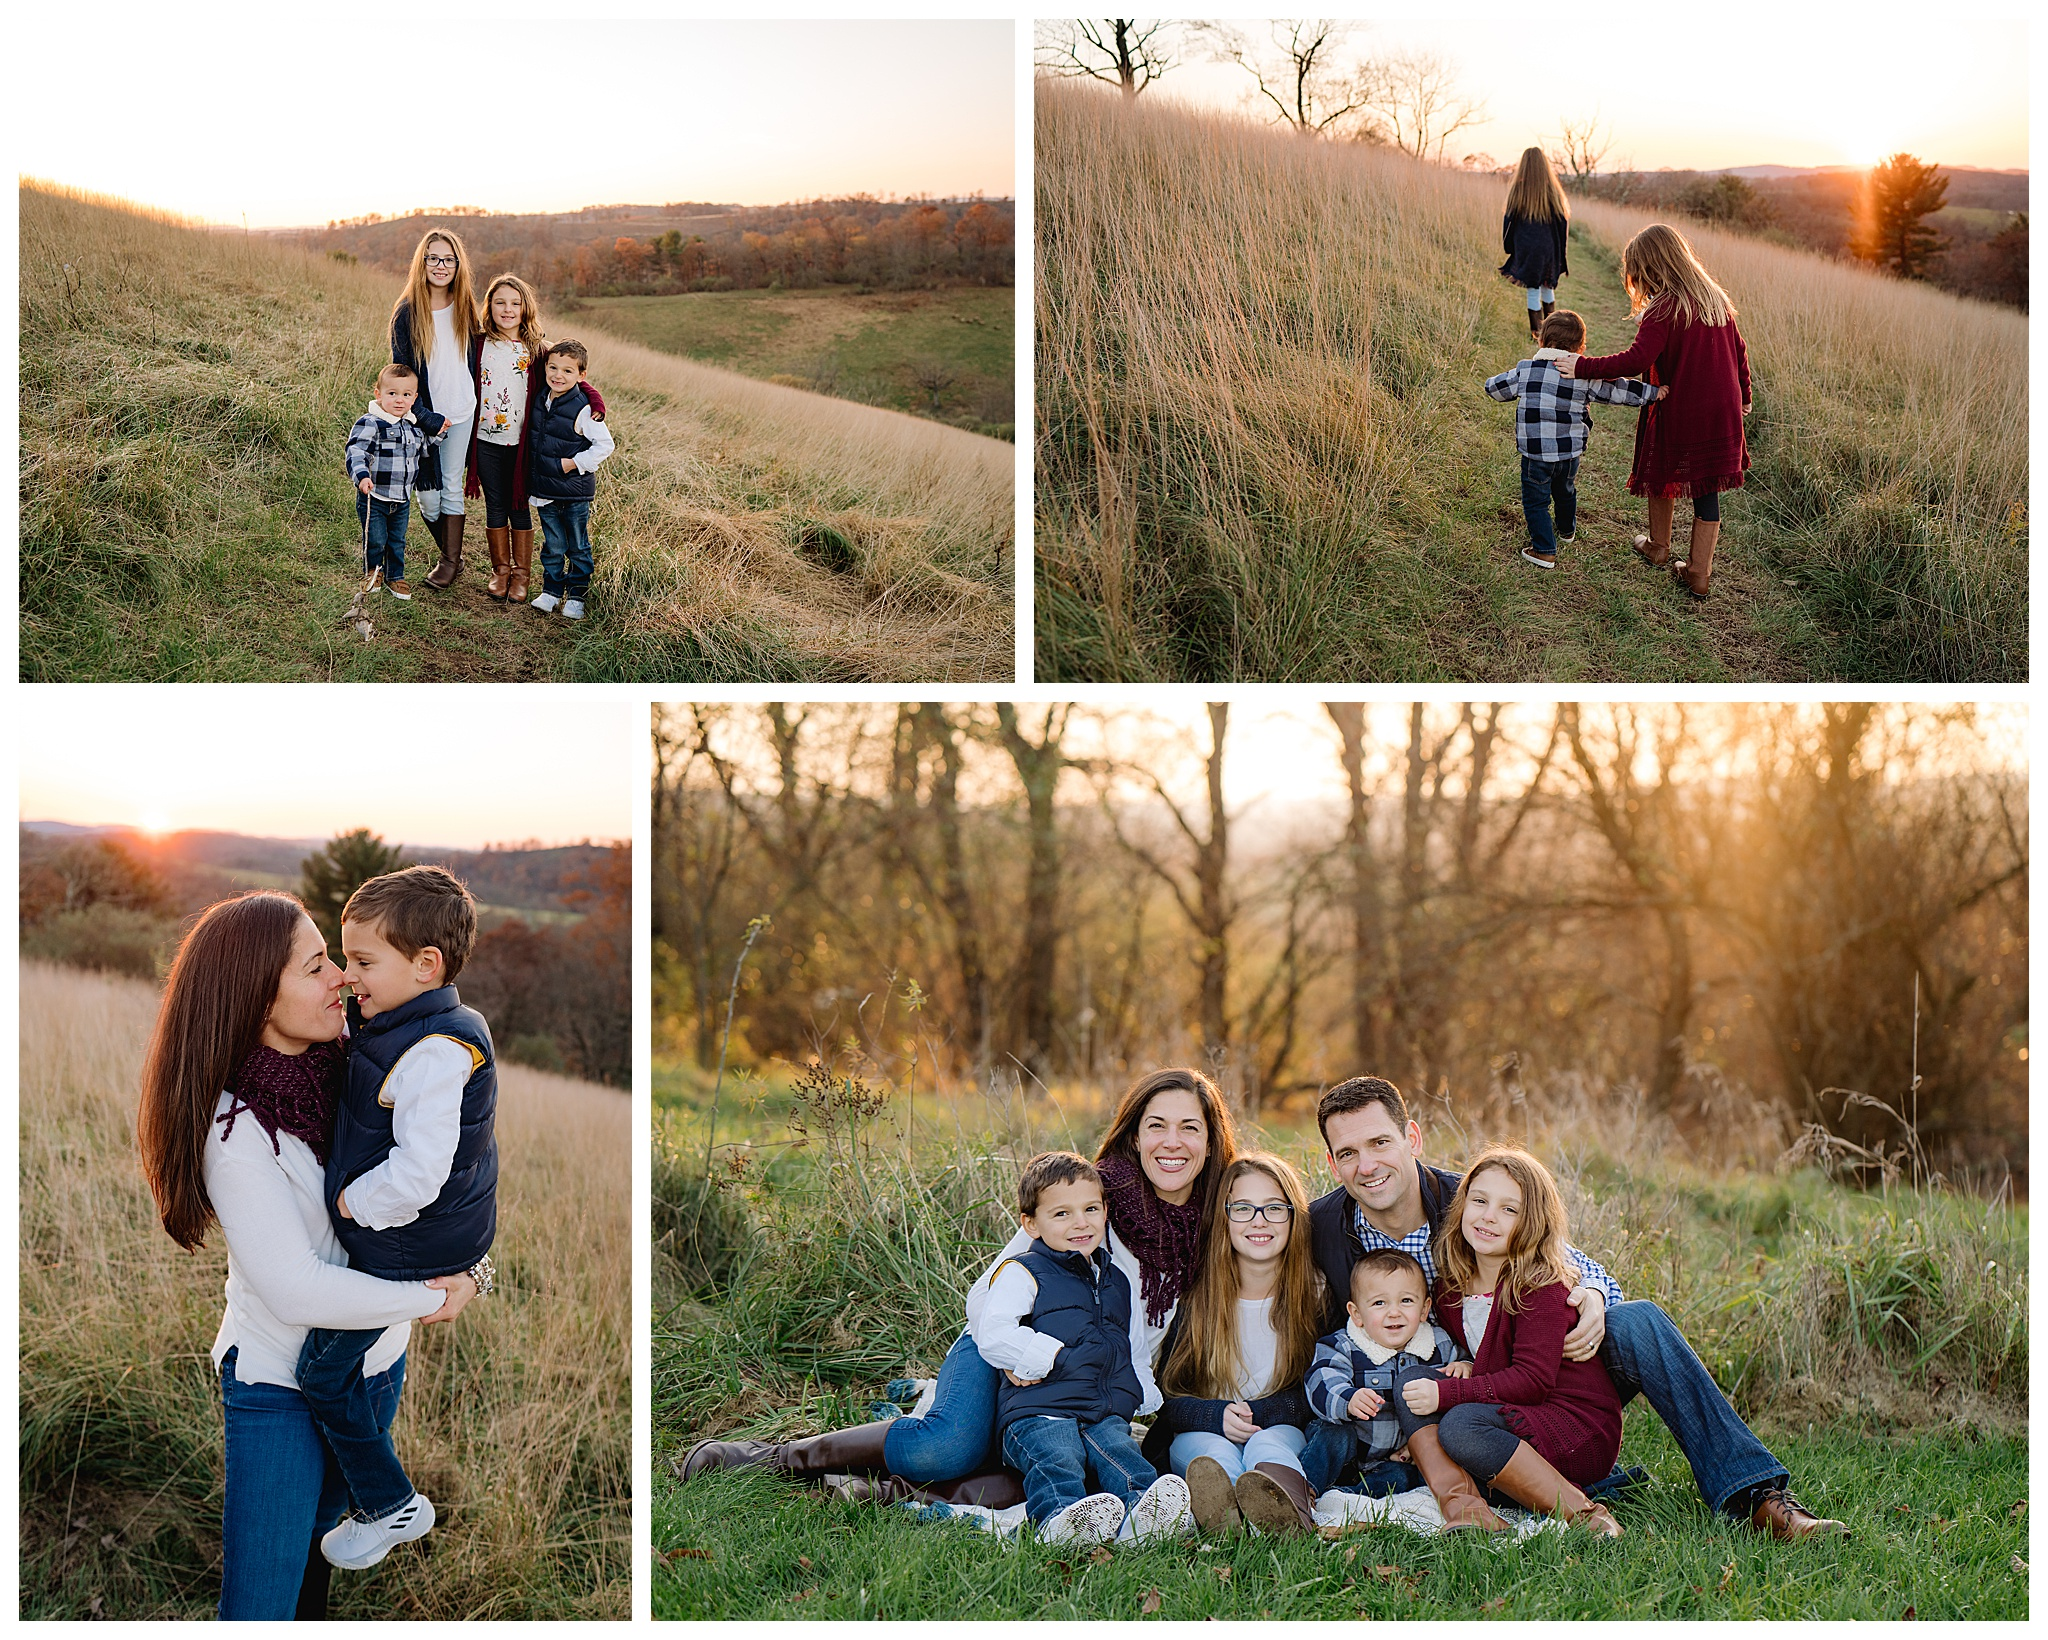 AnneMarie_Hamant_family_photographer_lehigh_valley_pa_0197.jpg